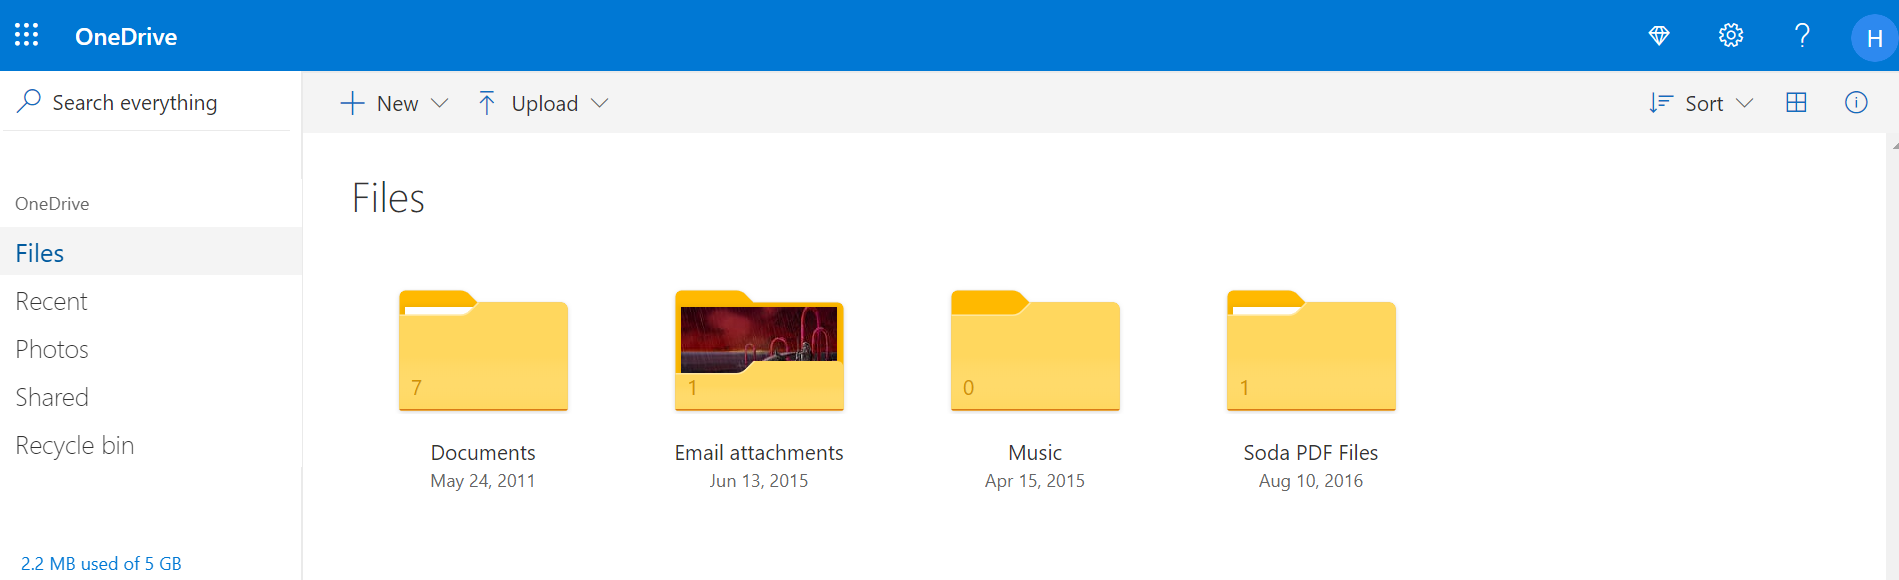 OneDrive File Sharing Services